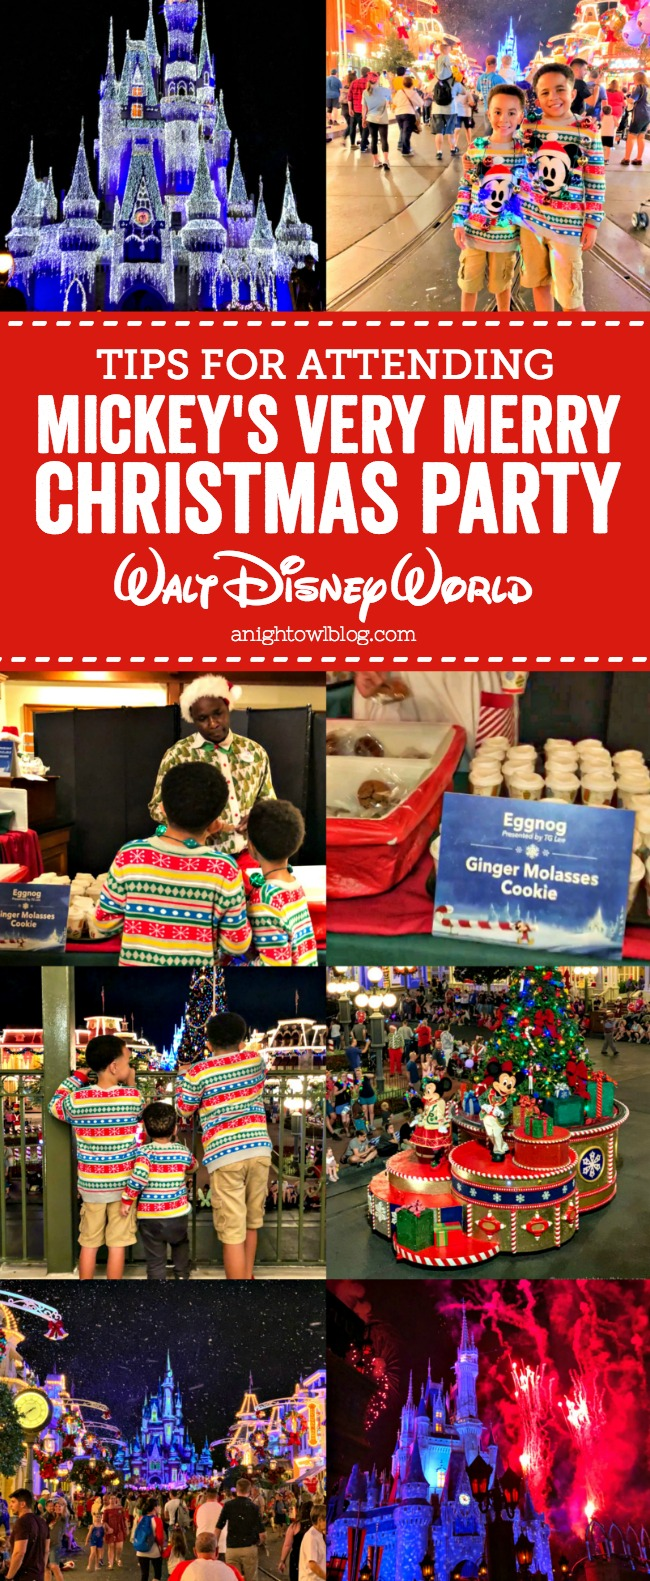 The after hours event is full of live entertainment and holiday cheer. Here are some great Mickey's Very Merry Christmas party tips.